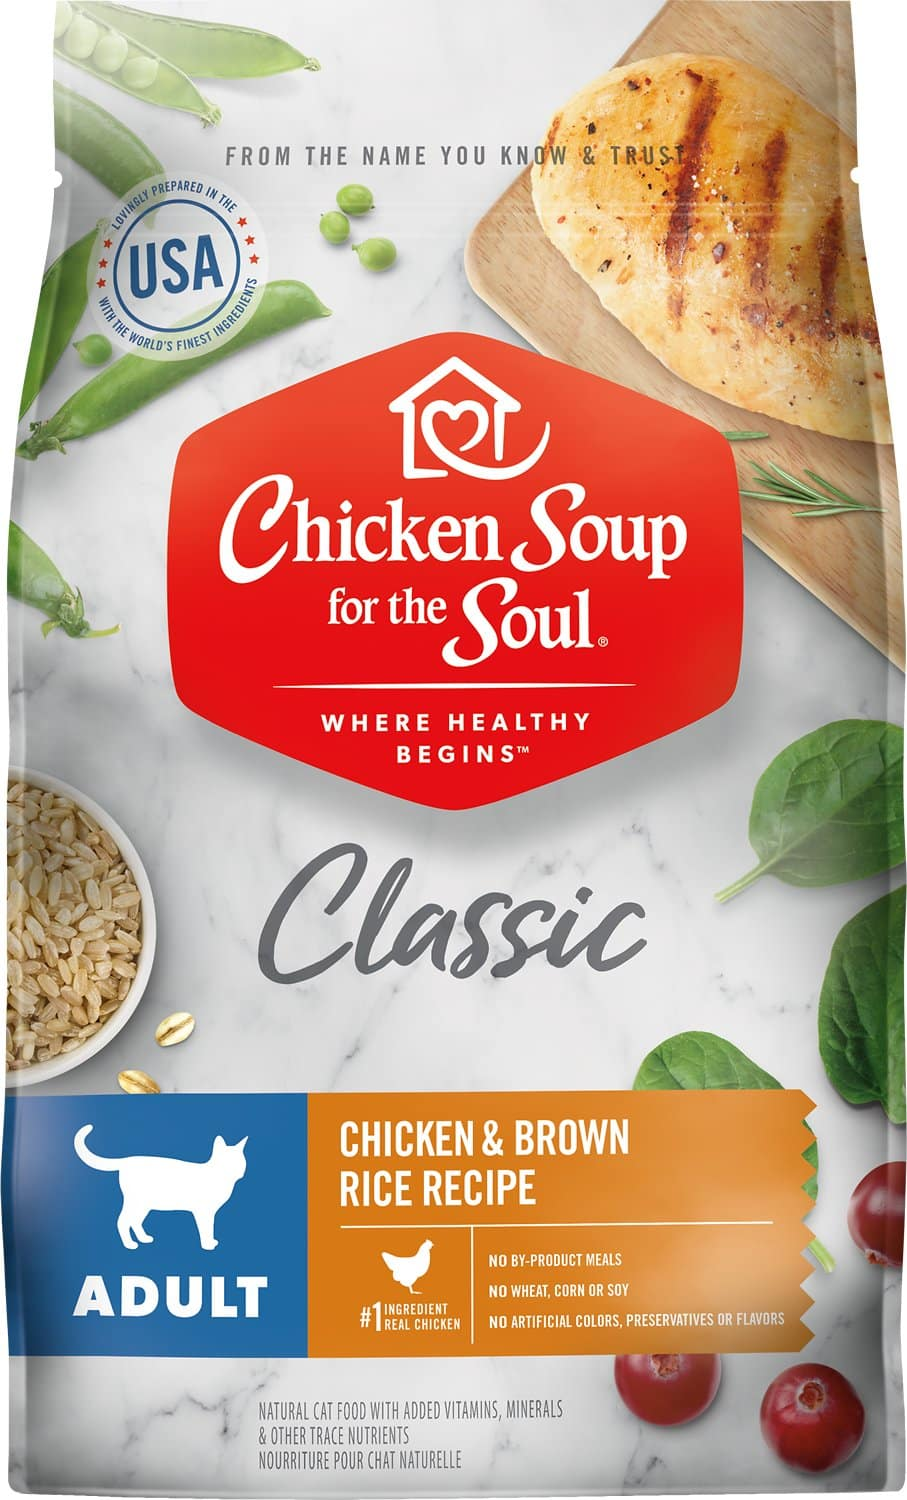 Chicken-Soup-for-The-Soul-Indoor-Cat-Food